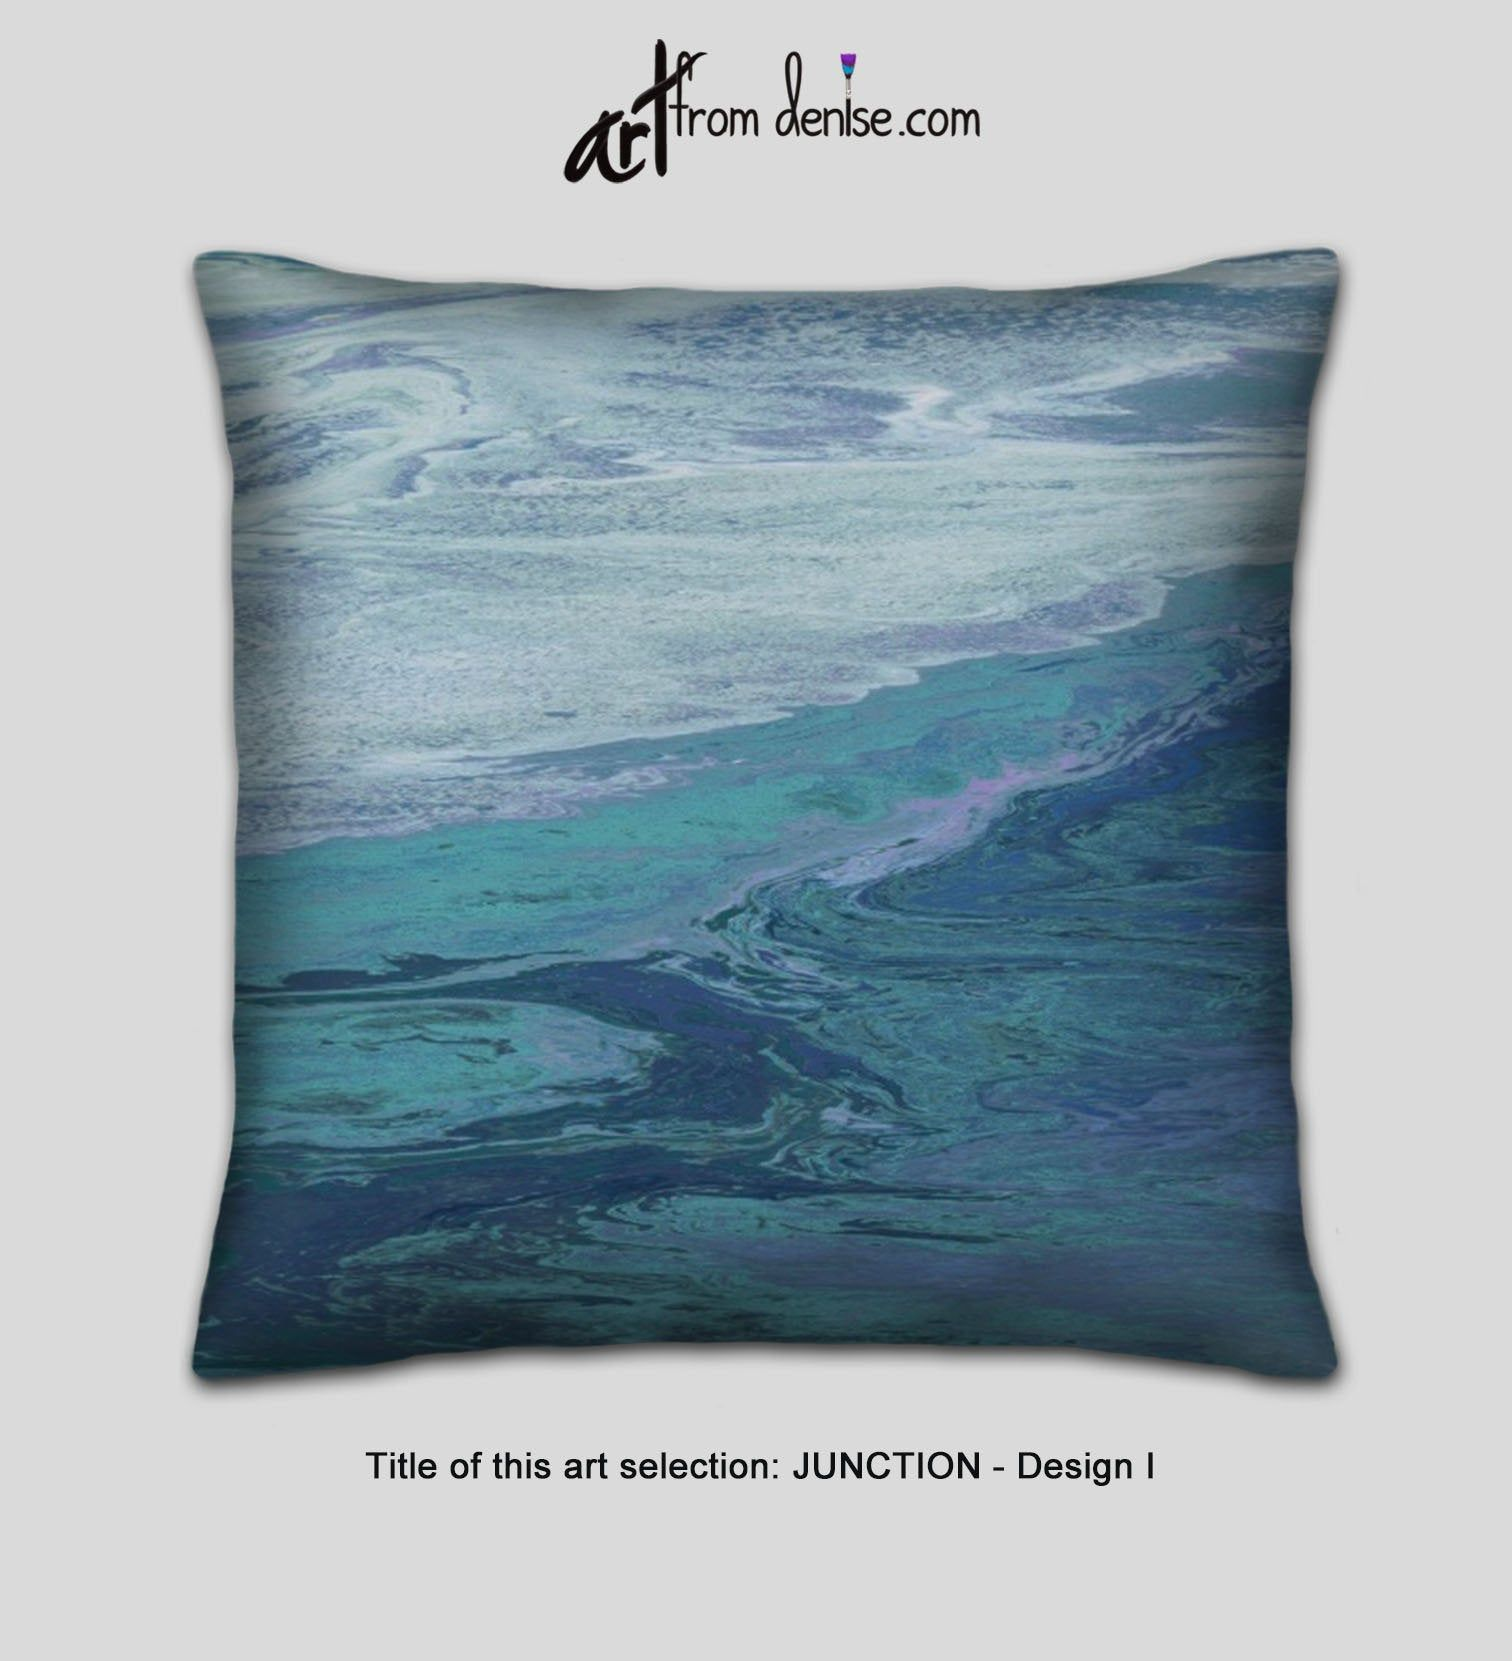 Gray Teal And Navy Blue Throw Pillows For Bed Decor Large Couch Pillows Set Or Outdooor Sofa Cushion Couch Pillow Sets Large Couch Pillows Throw Pillows Bed